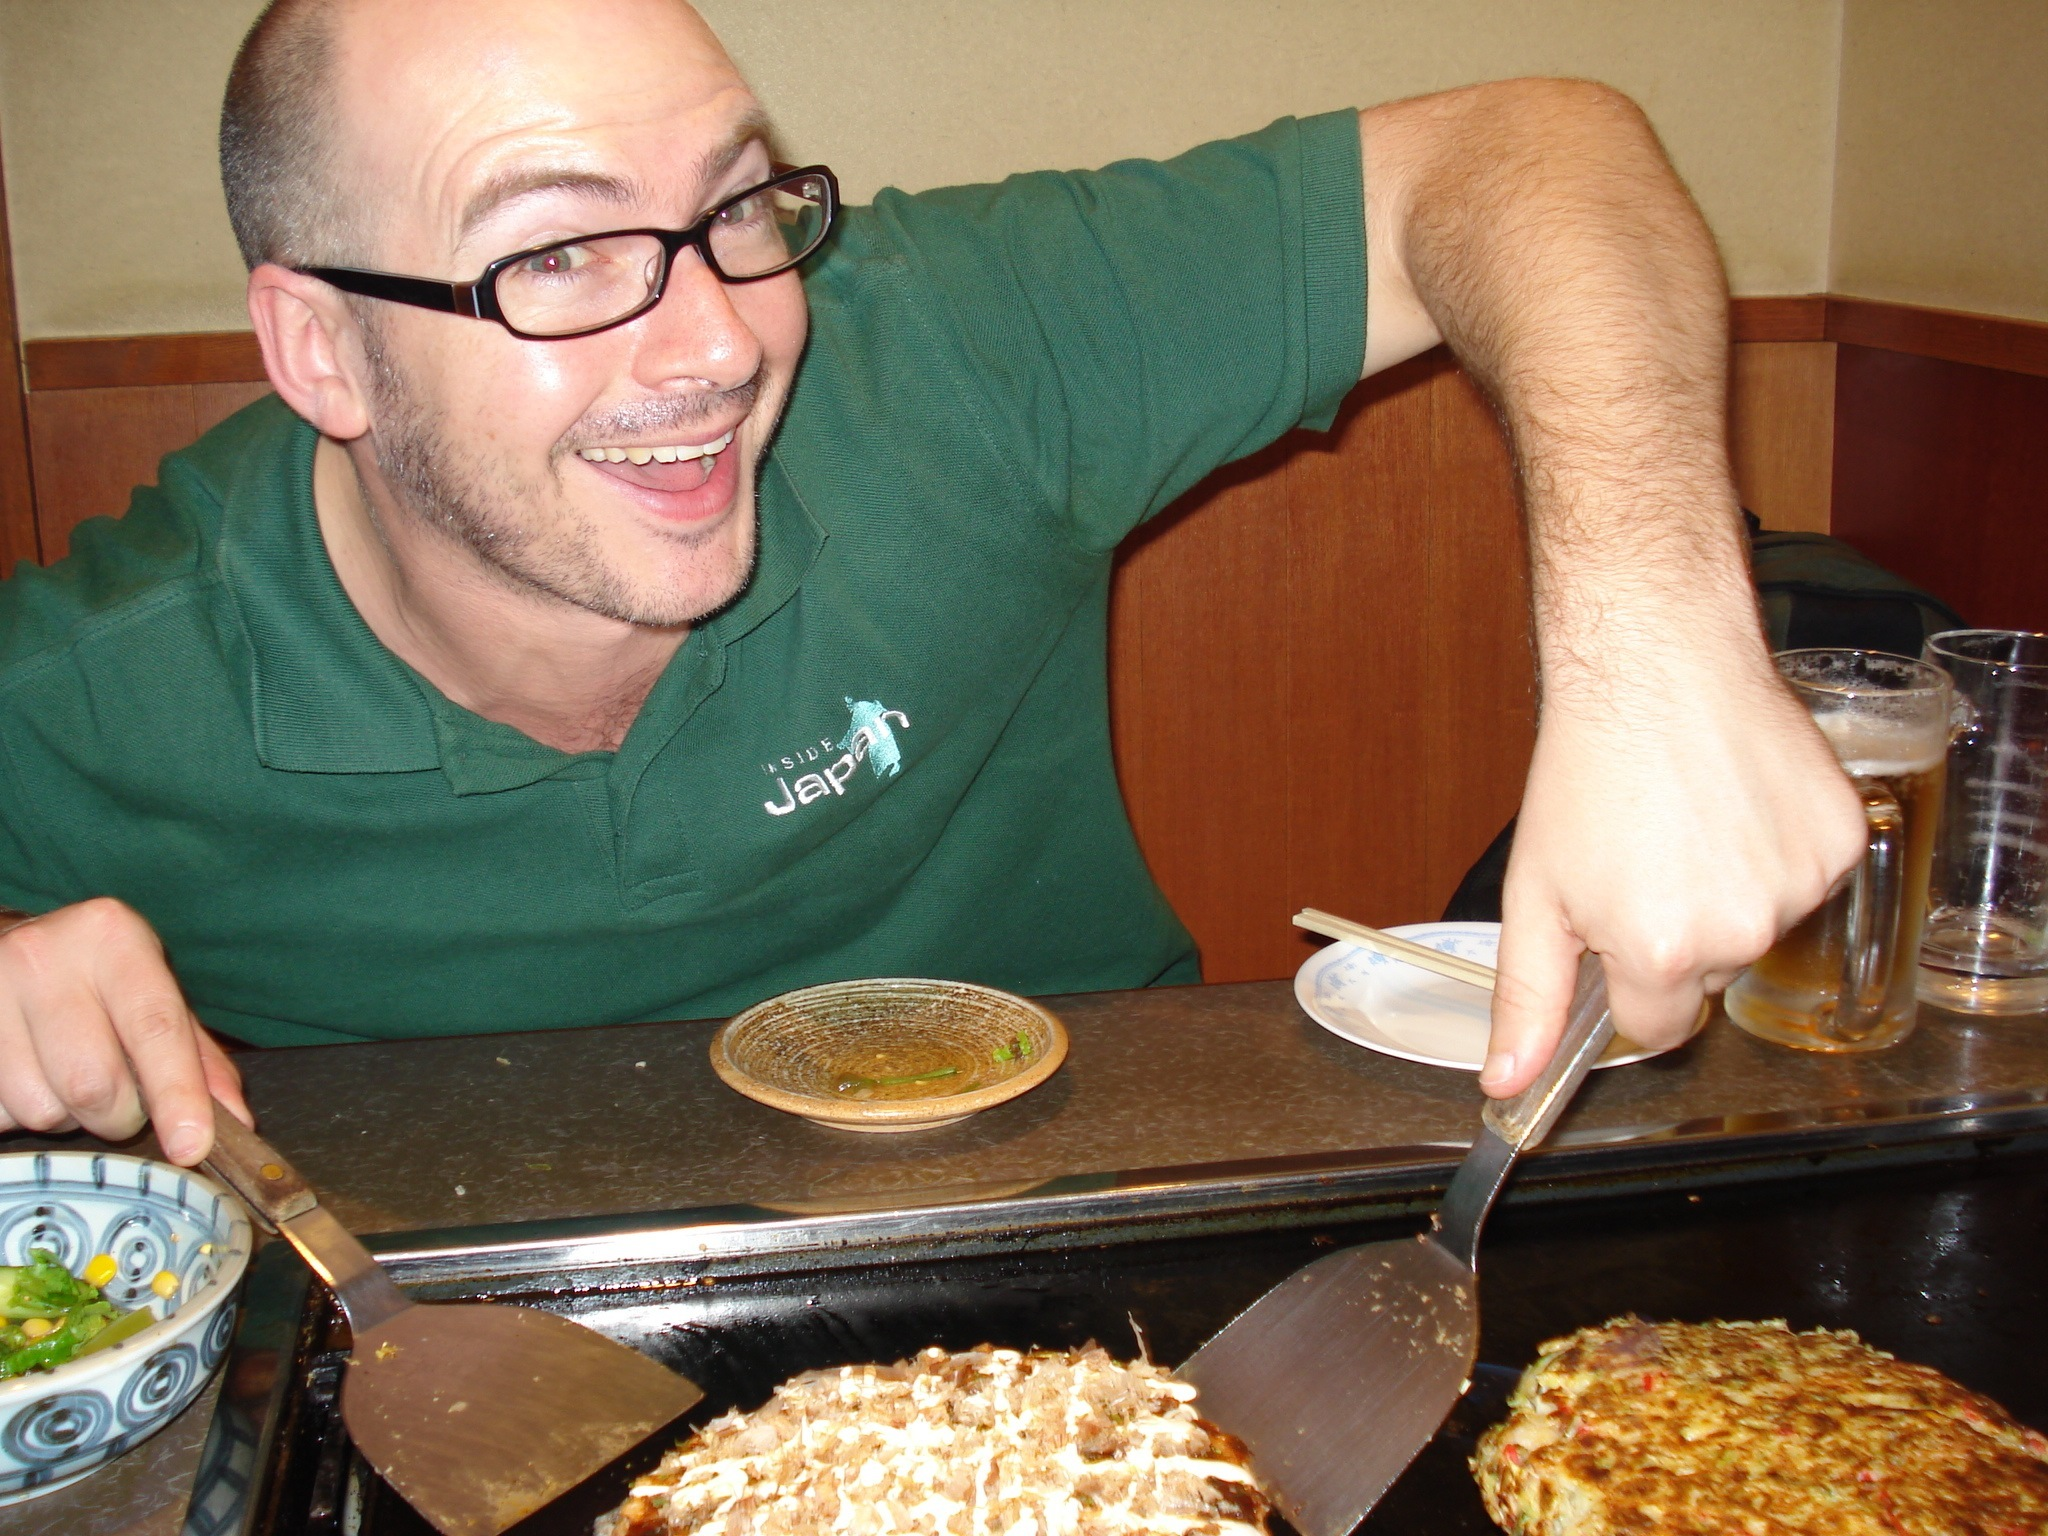 Alastair making okonomiyaki, and looking pretty happy about it too